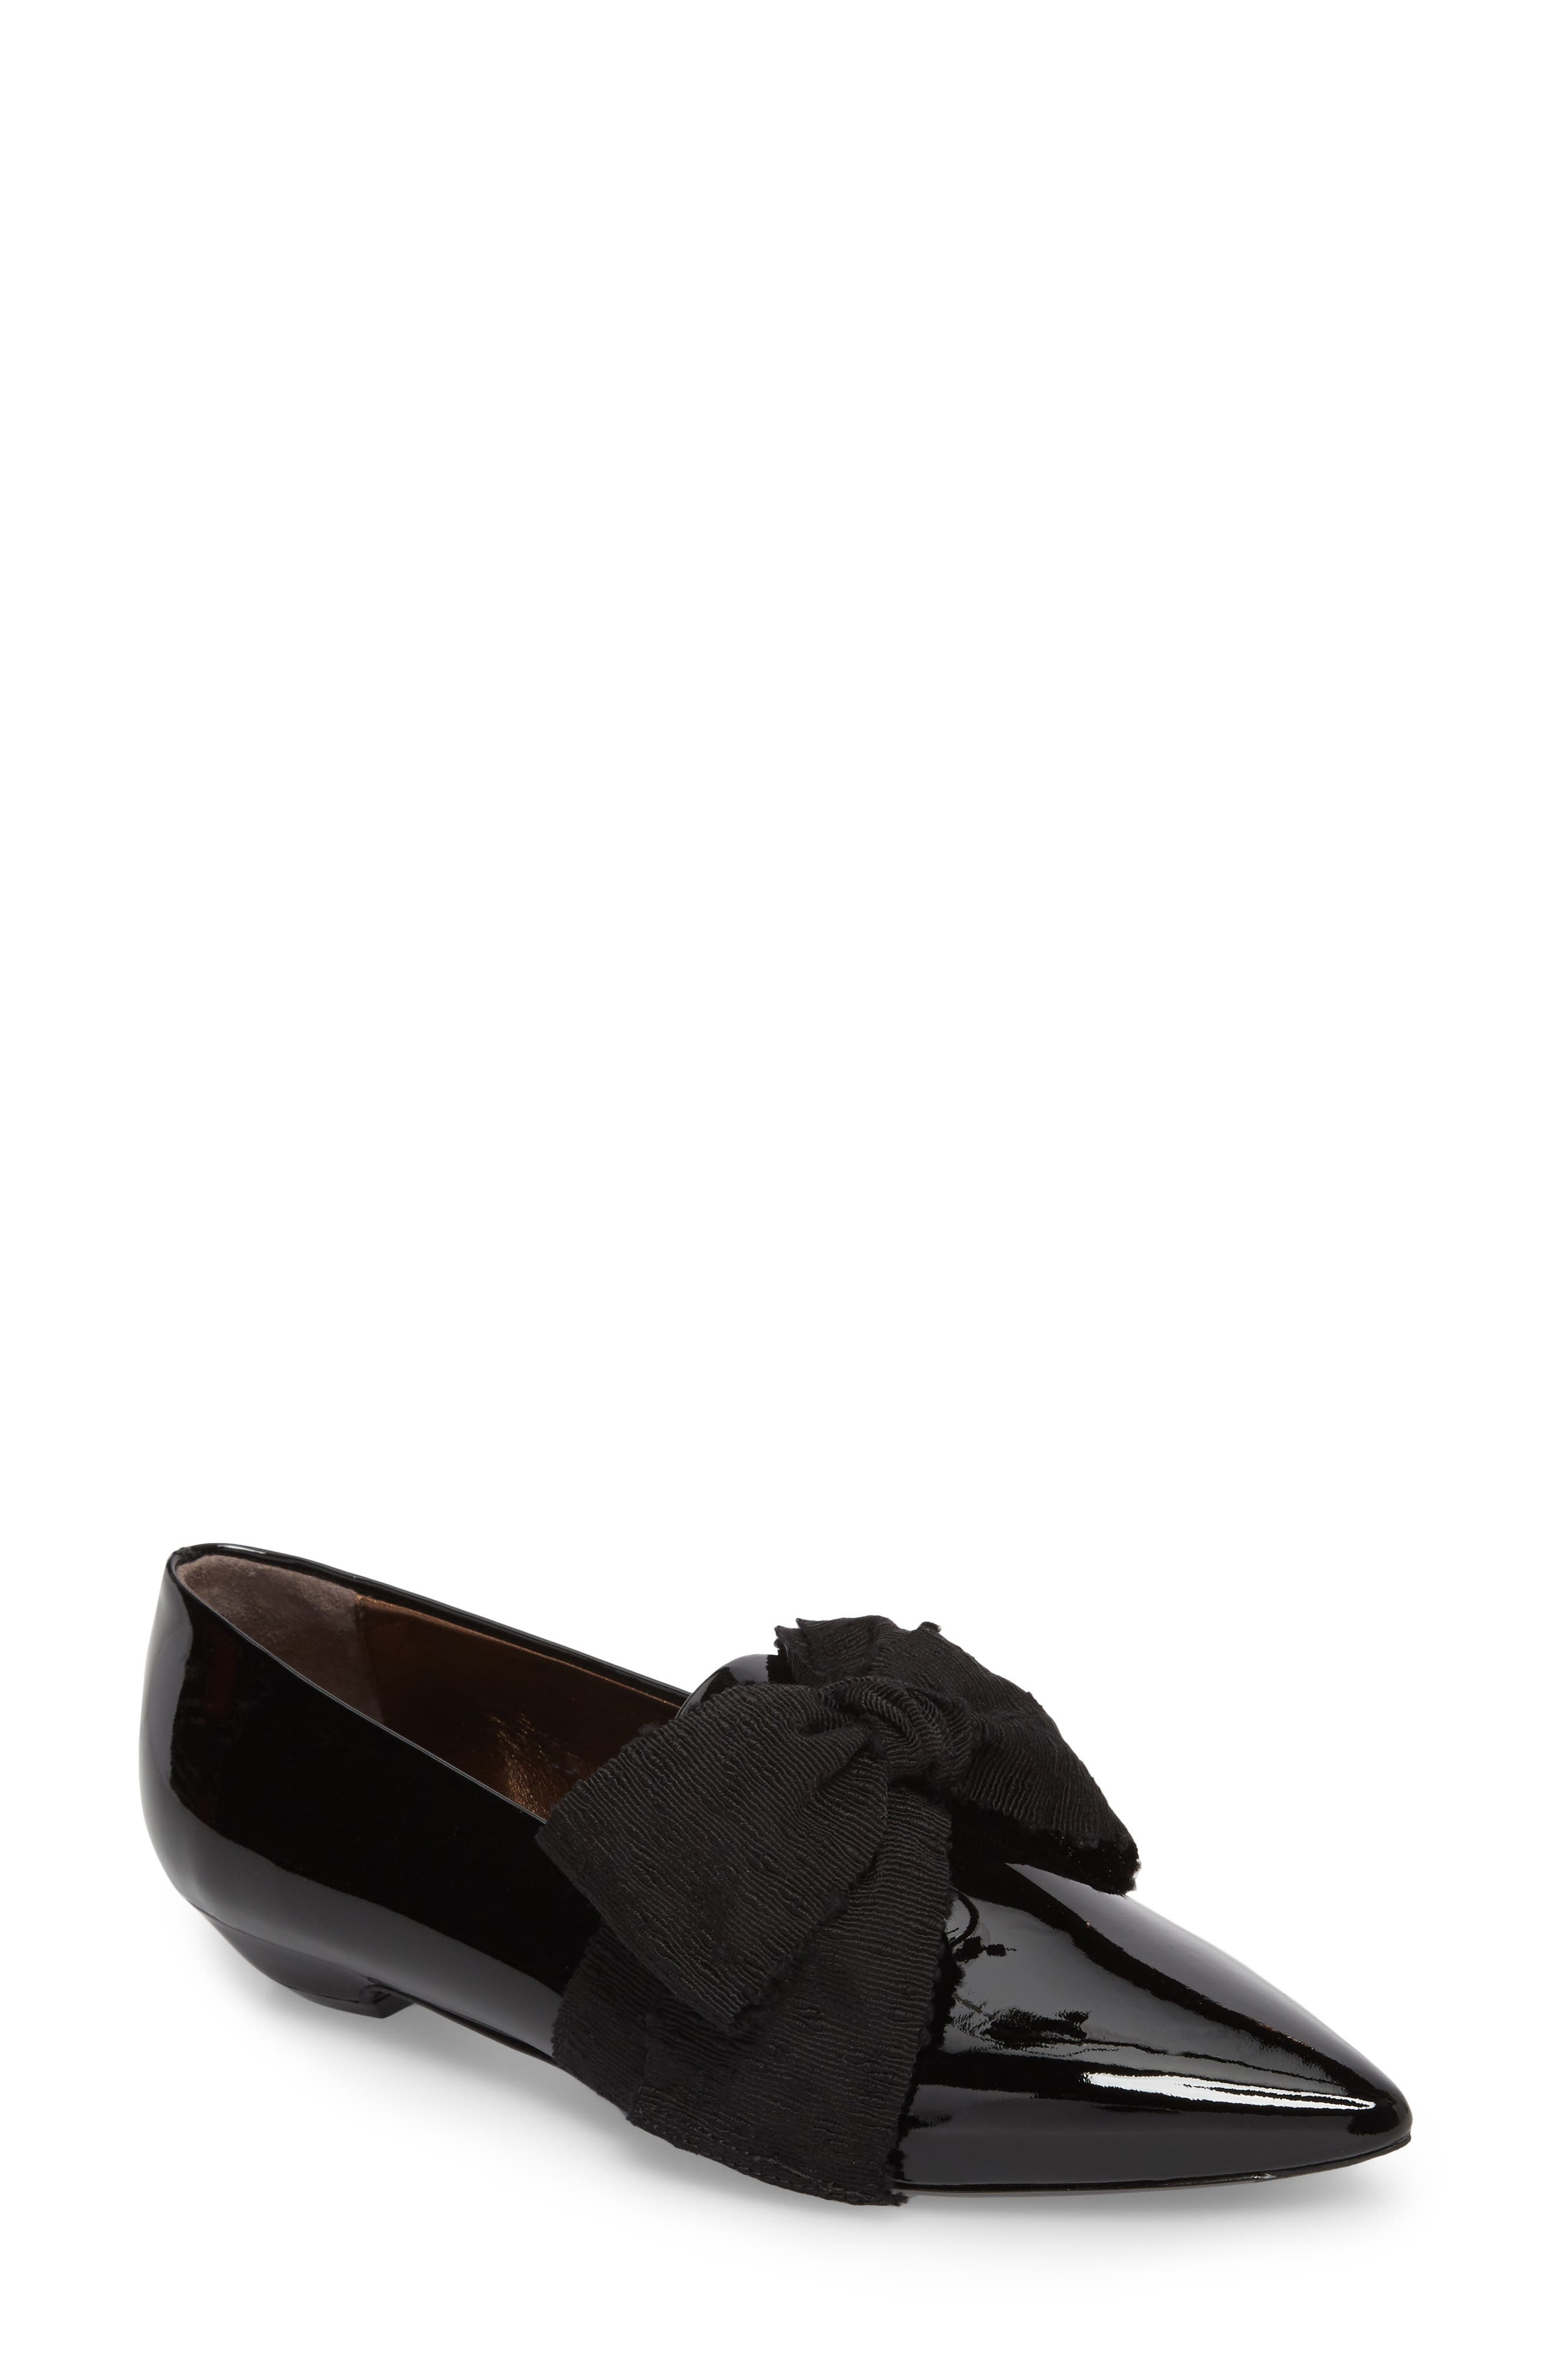 Maggie Bow Loafer,                         Main,                         color, Black Patent